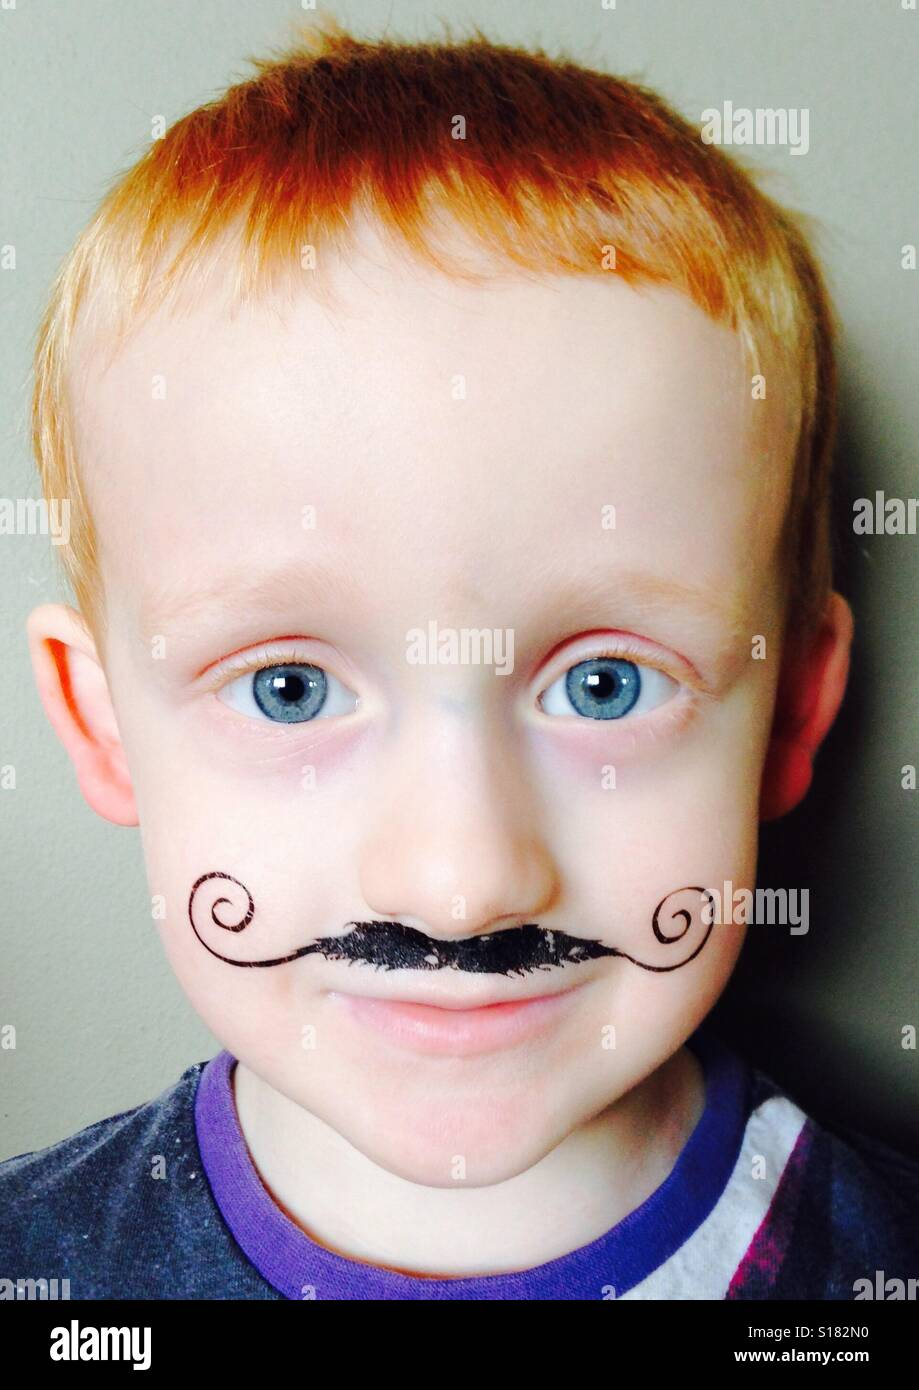 Red haired, blue eyed boy with a curly drawn on moustache - Stock Image